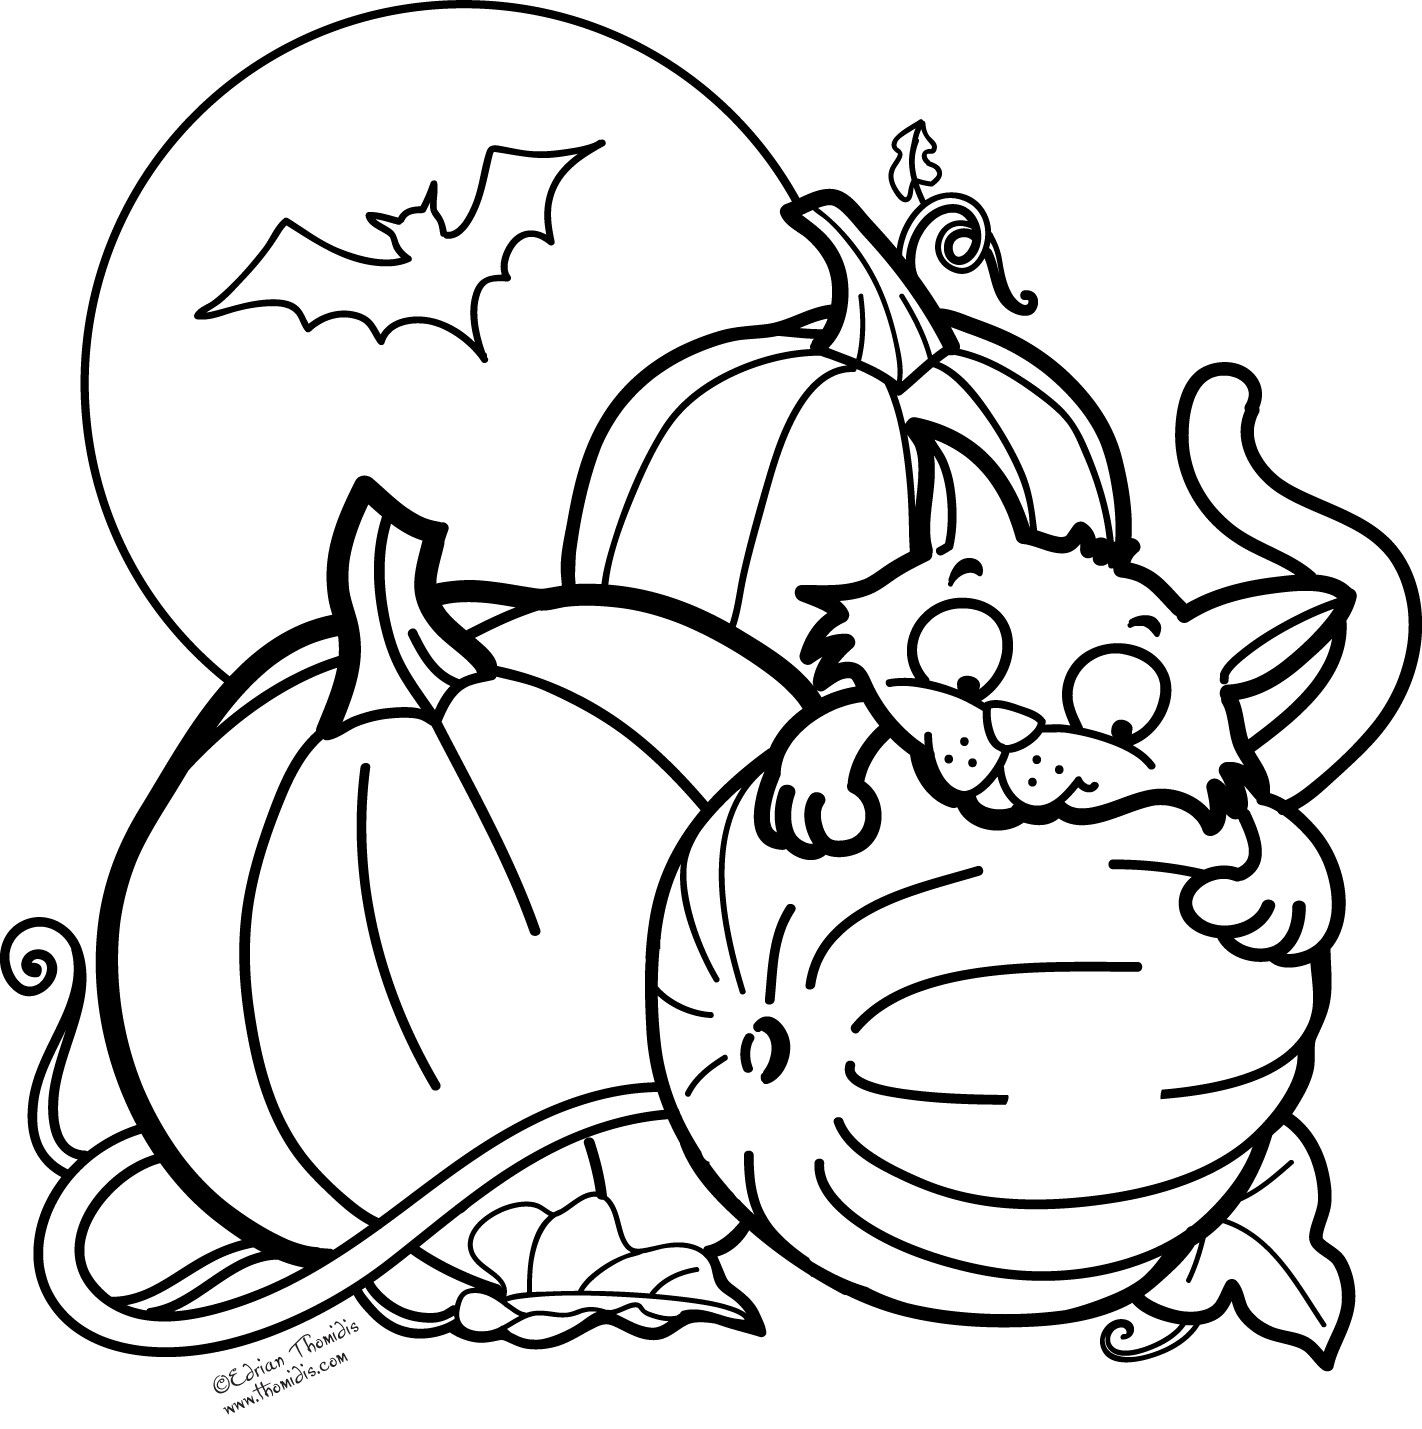 halloween coloring pages google search halloween pinterest halloween coloring halloween. Black Bedroom Furniture Sets. Home Design Ideas